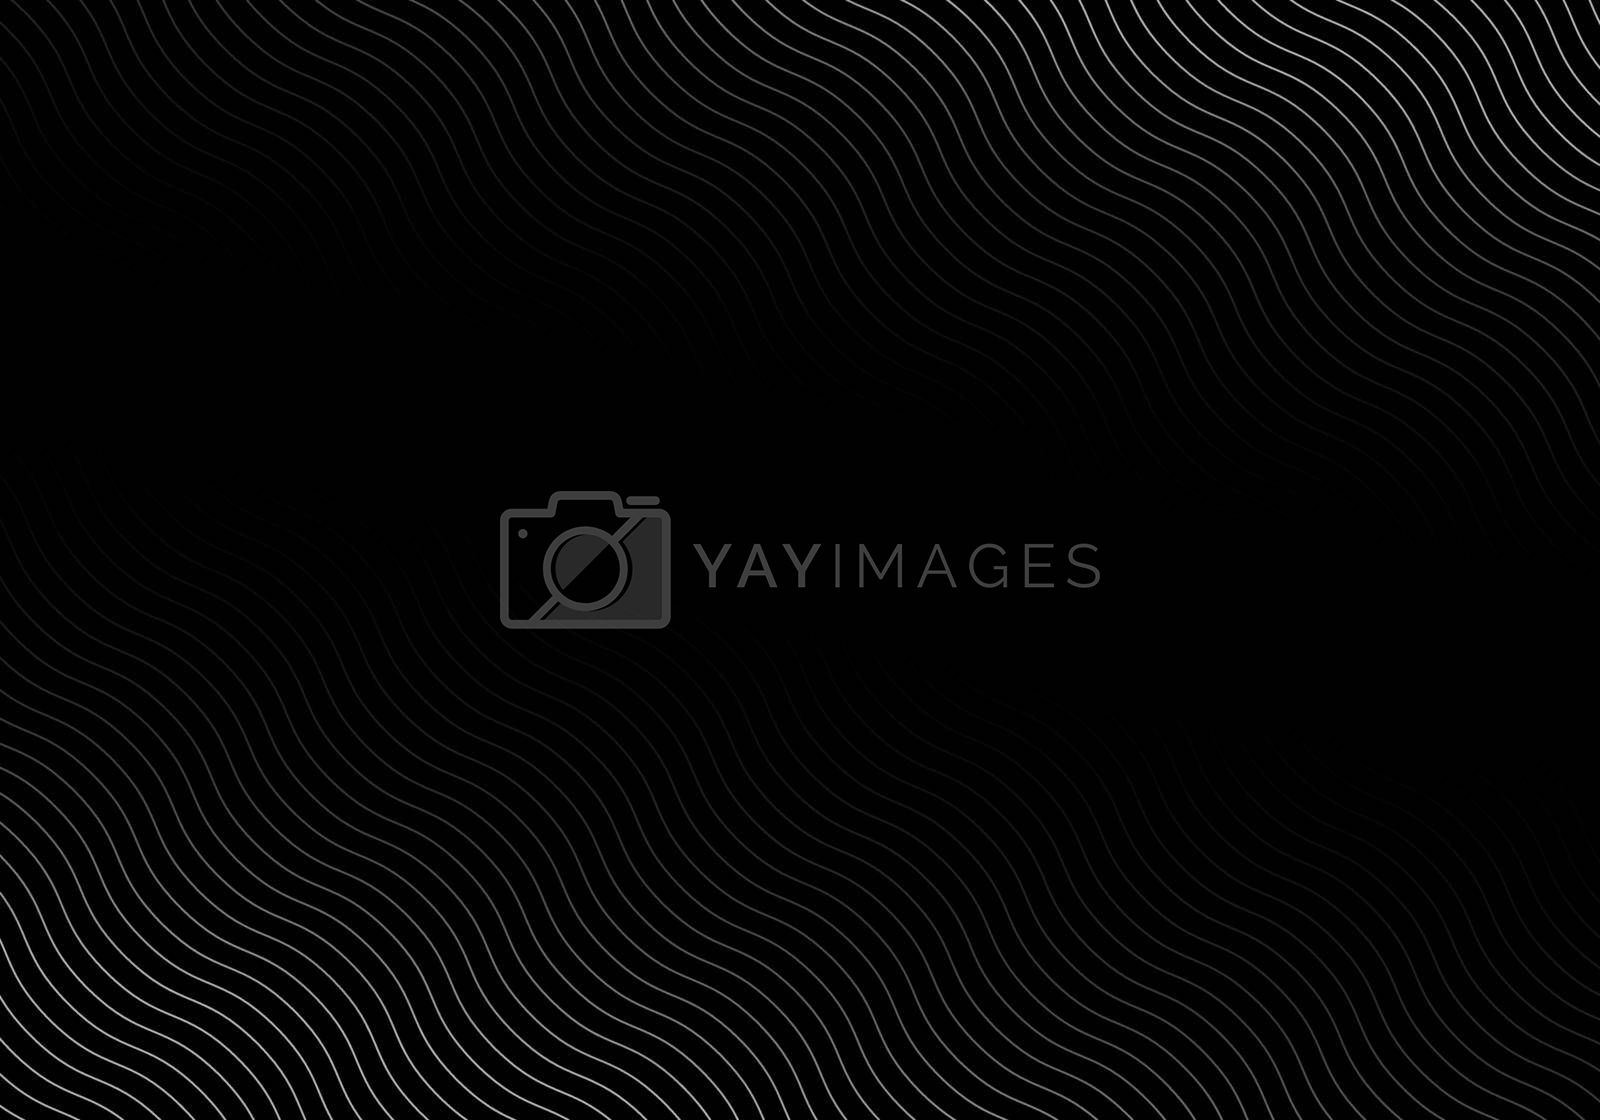 Royalty free image of Abstract wave lines white color pattern on black background by phochi